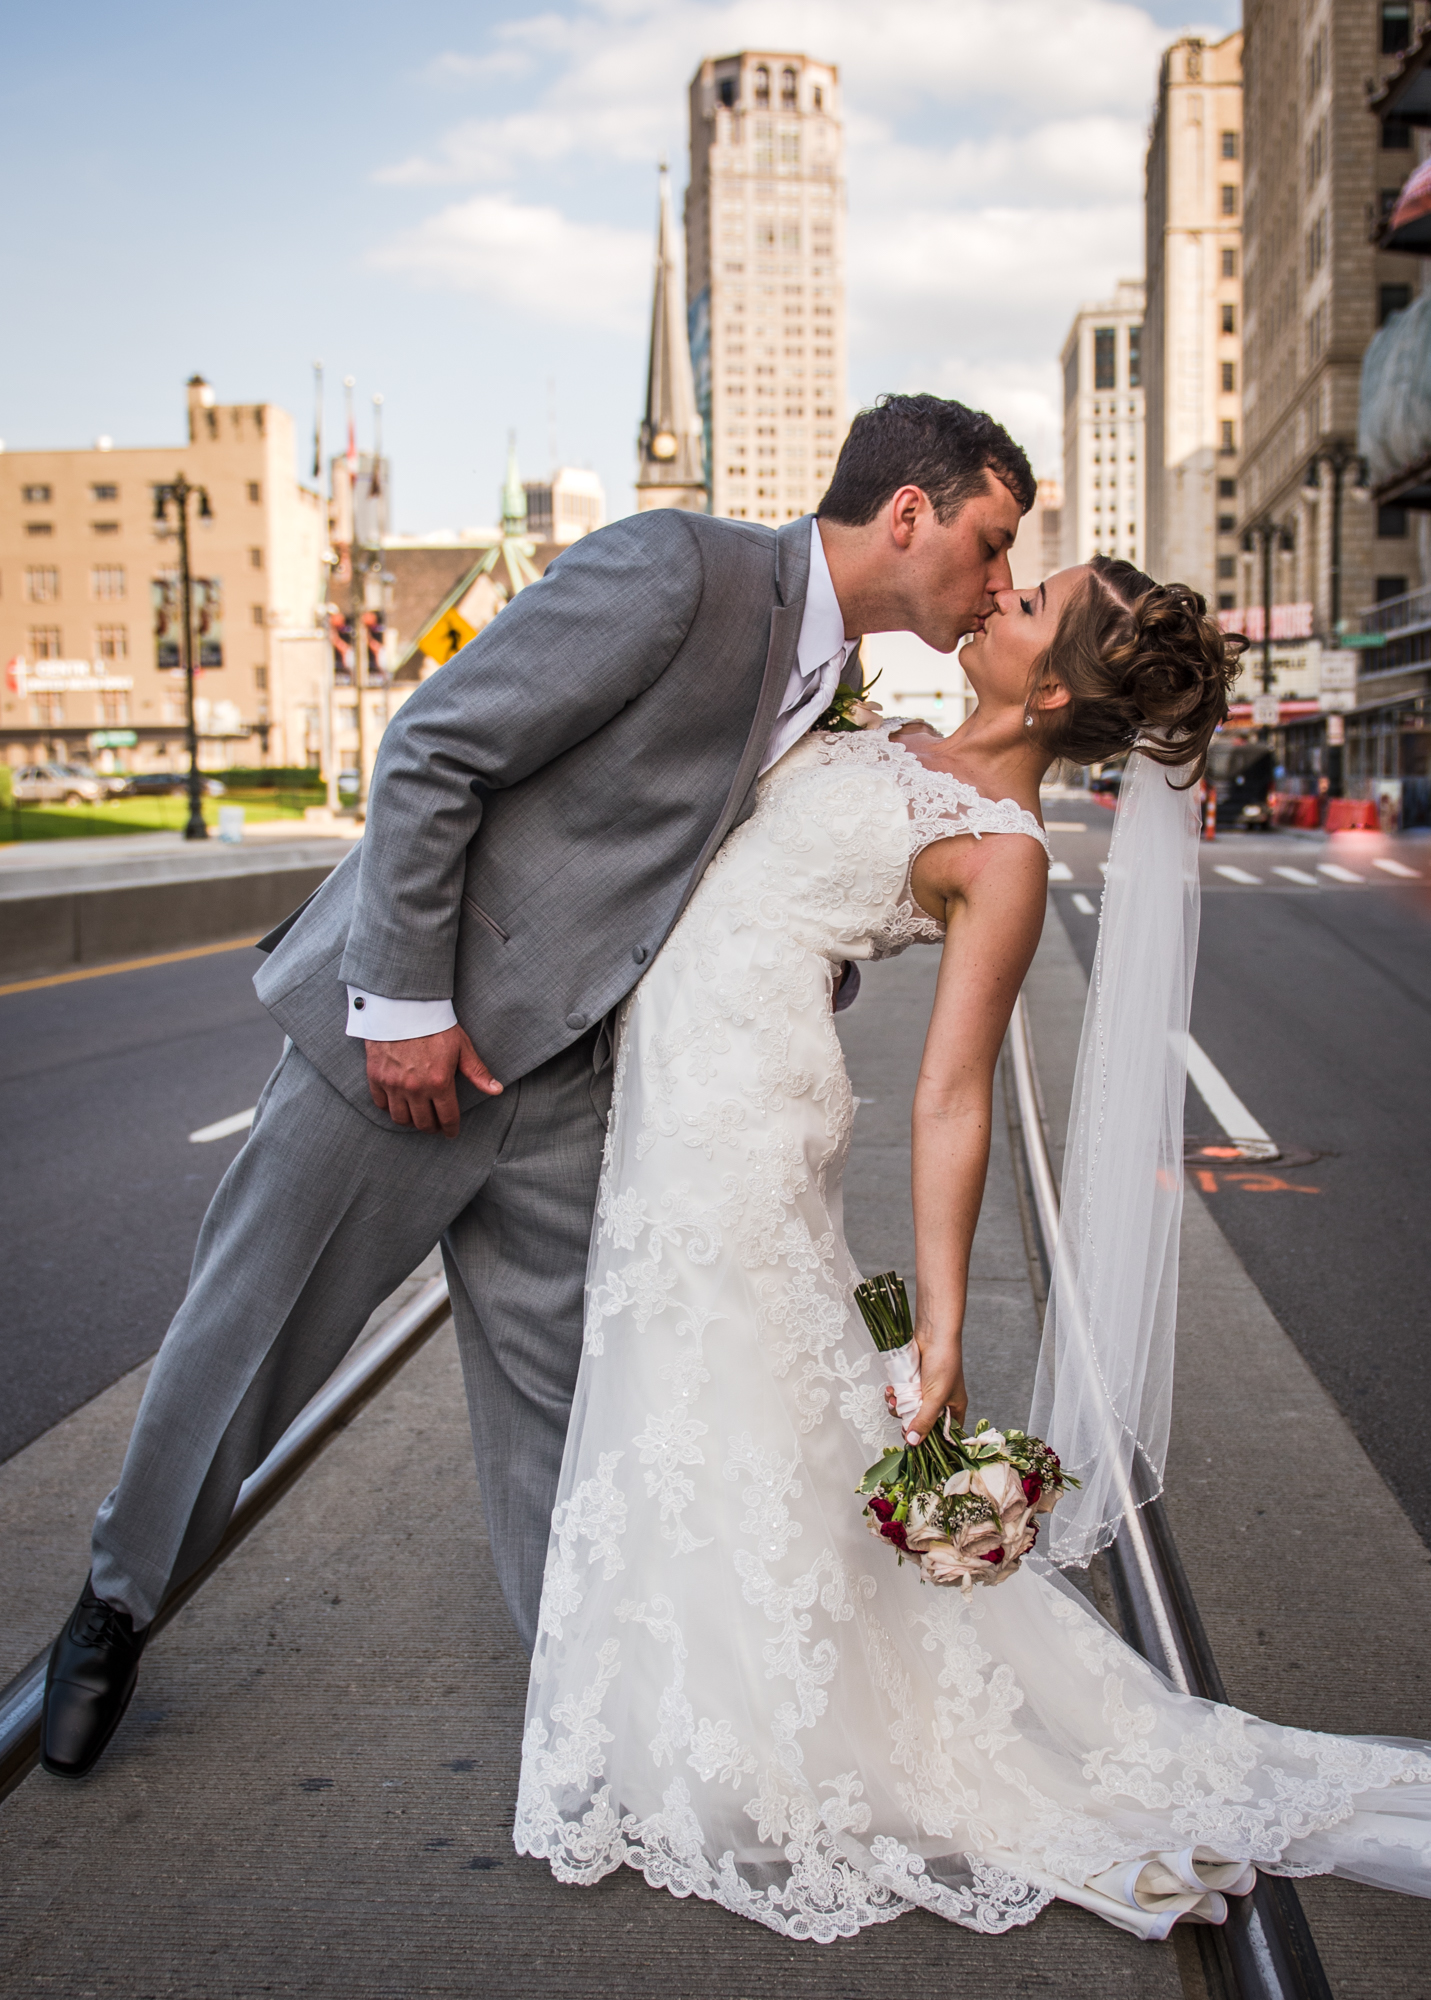 Detriot Wedding Photographer 37.jpg